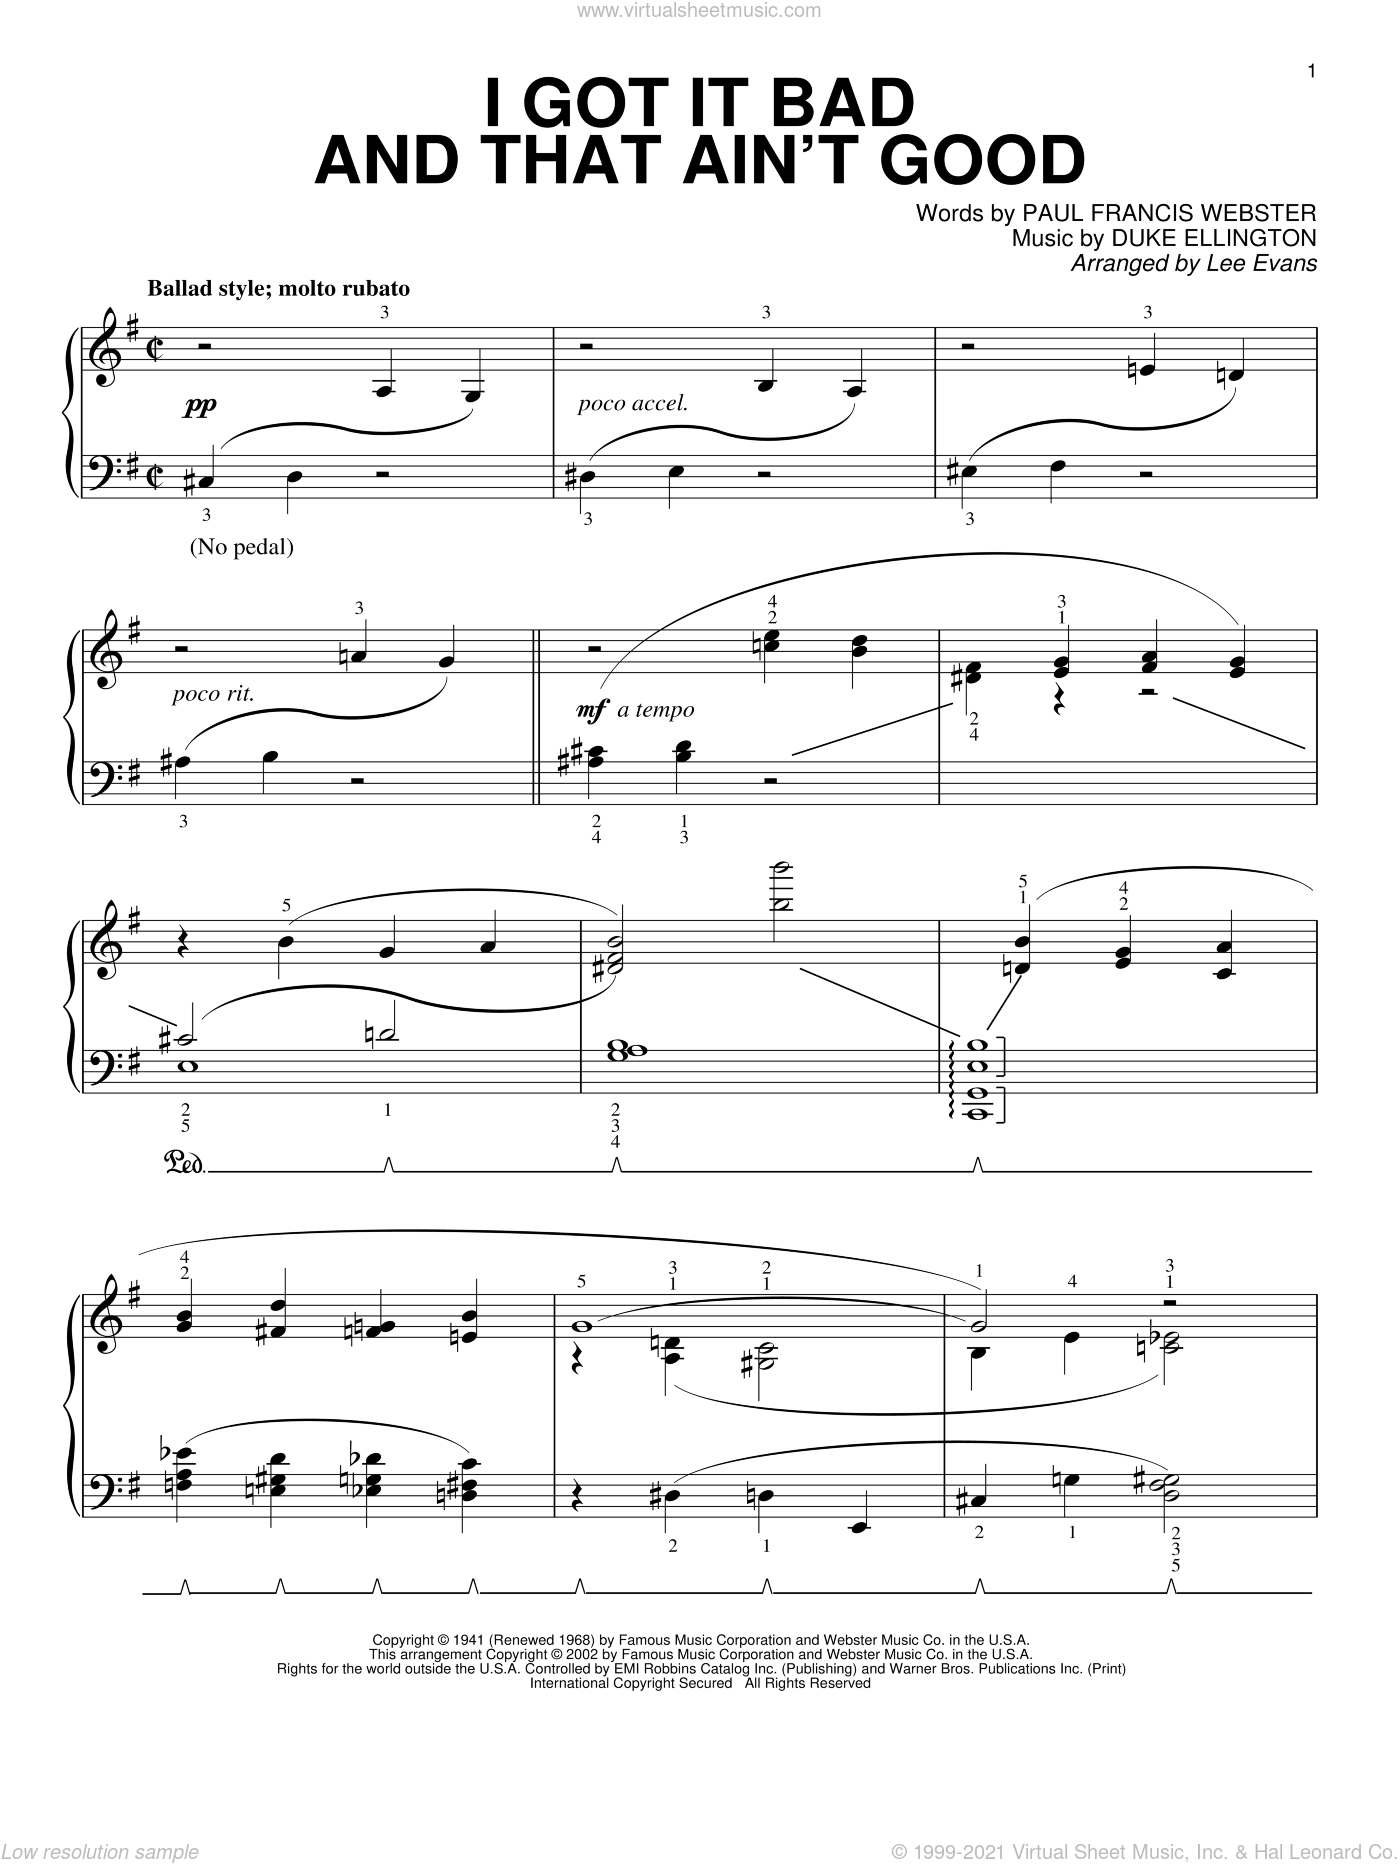 I Got It Bad And That Ain't Good sheet music for piano solo by Paul Francis Webster and Duke Ellington, intermediate skill level